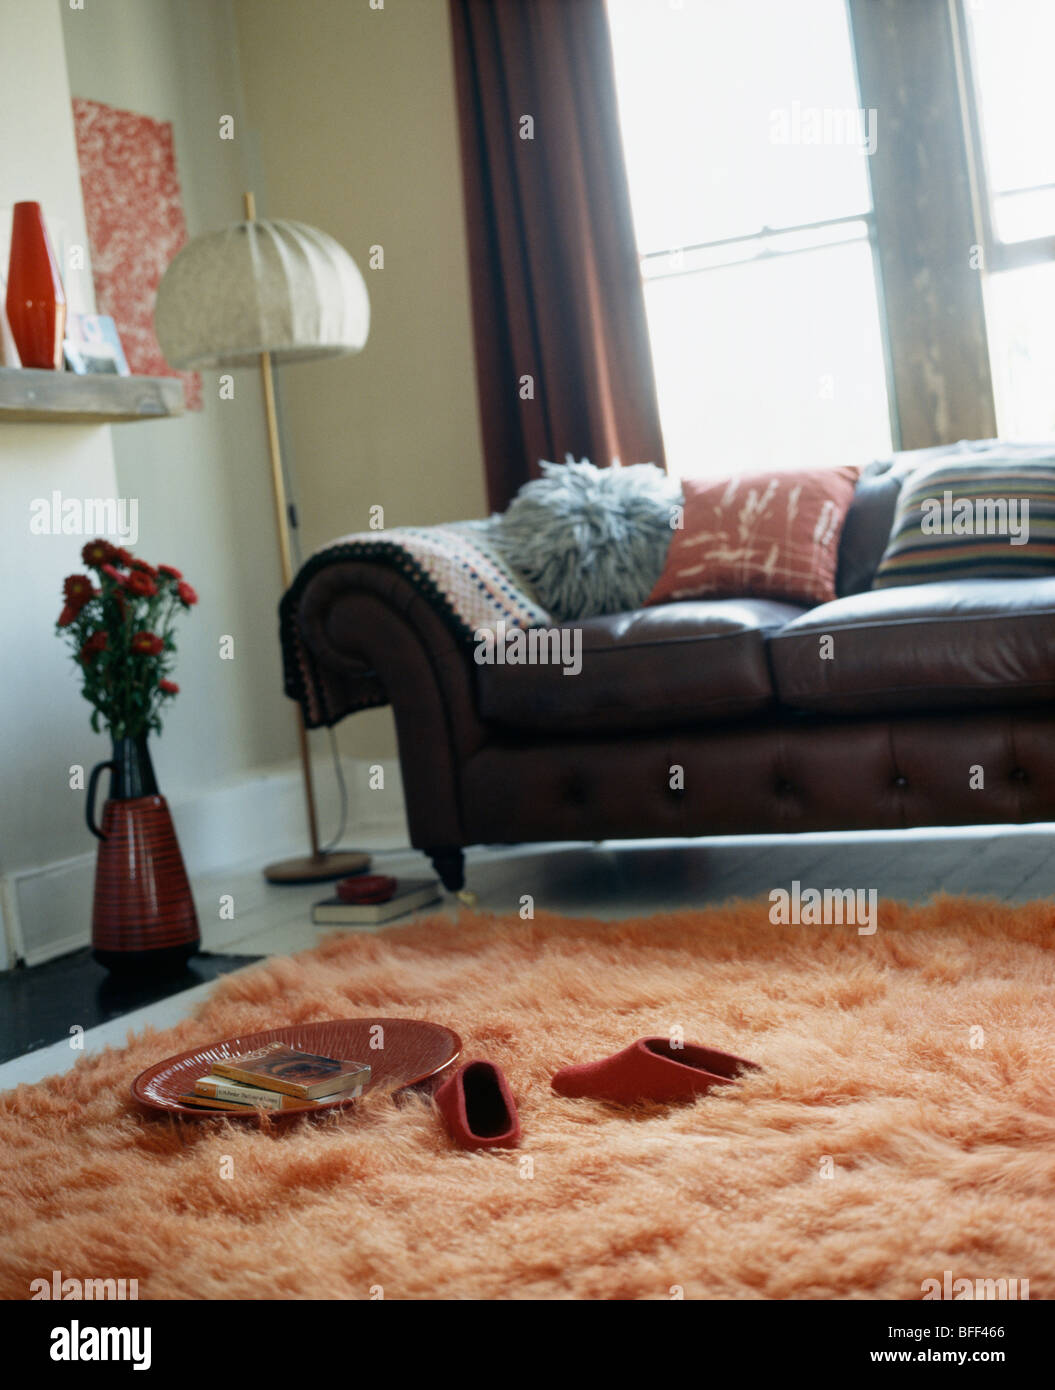 Miraculous Black Leather Sofa And Orange Faux Fur Rug In Modern Living Alphanode Cool Chair Designs And Ideas Alphanodeonline